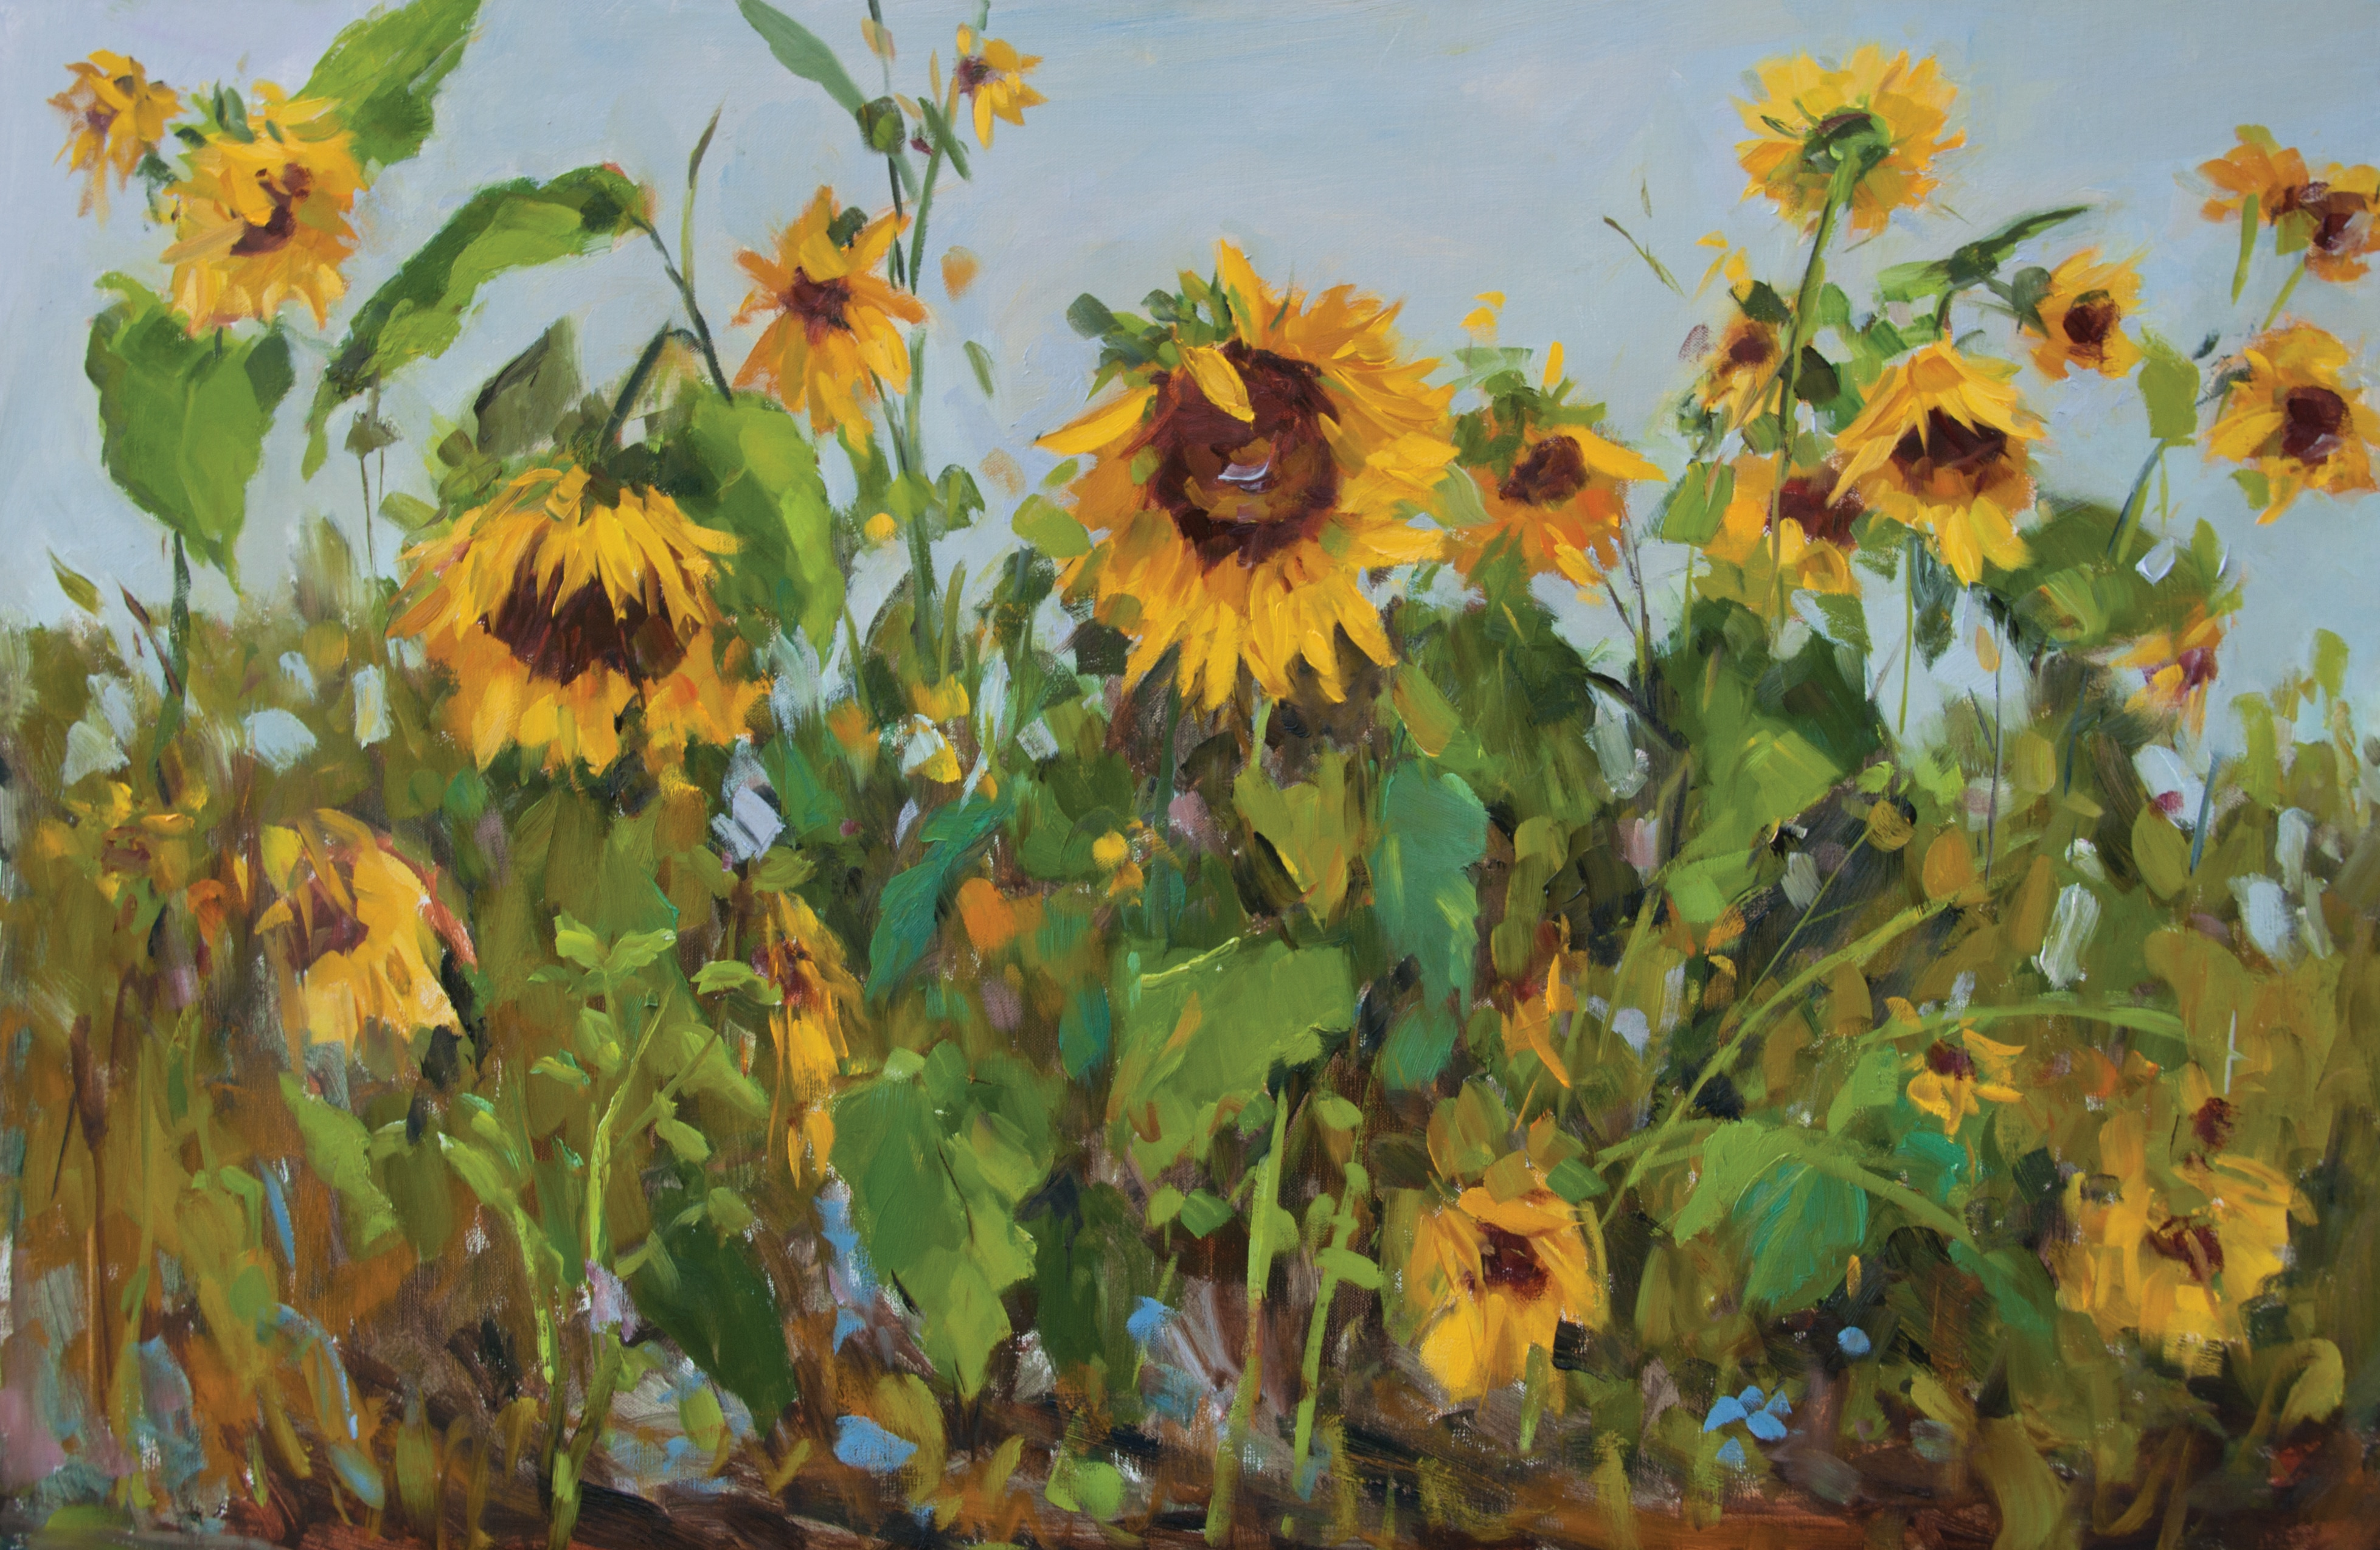 Kelly Kane S Pick Of The Week Sunflowers In The Garden